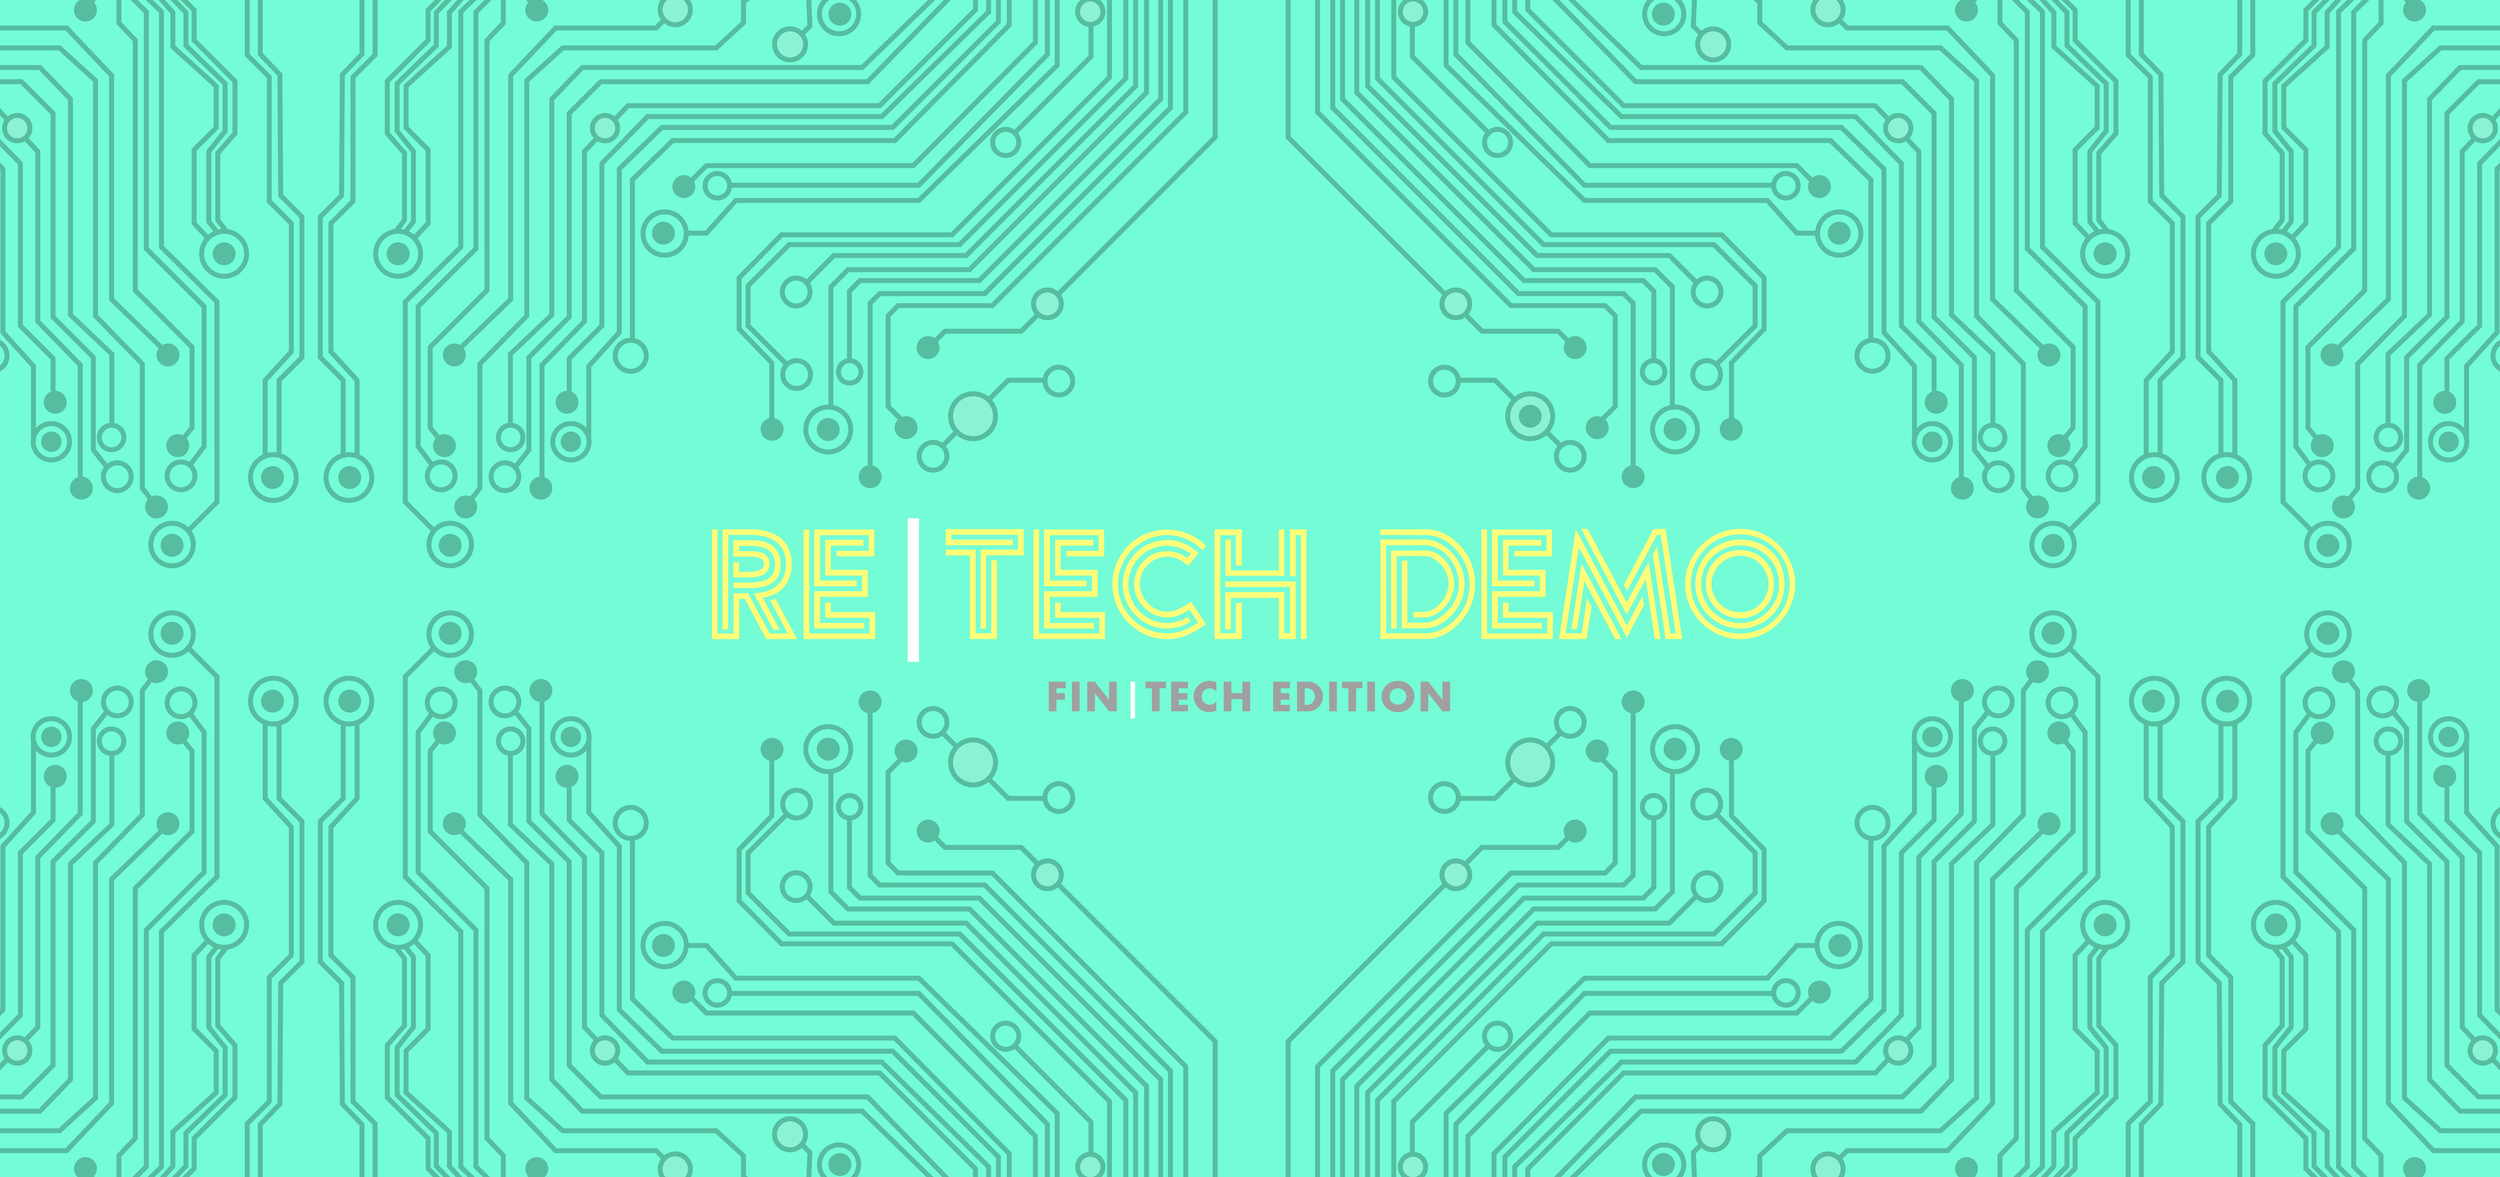 Re Tech Demo FinTech.png